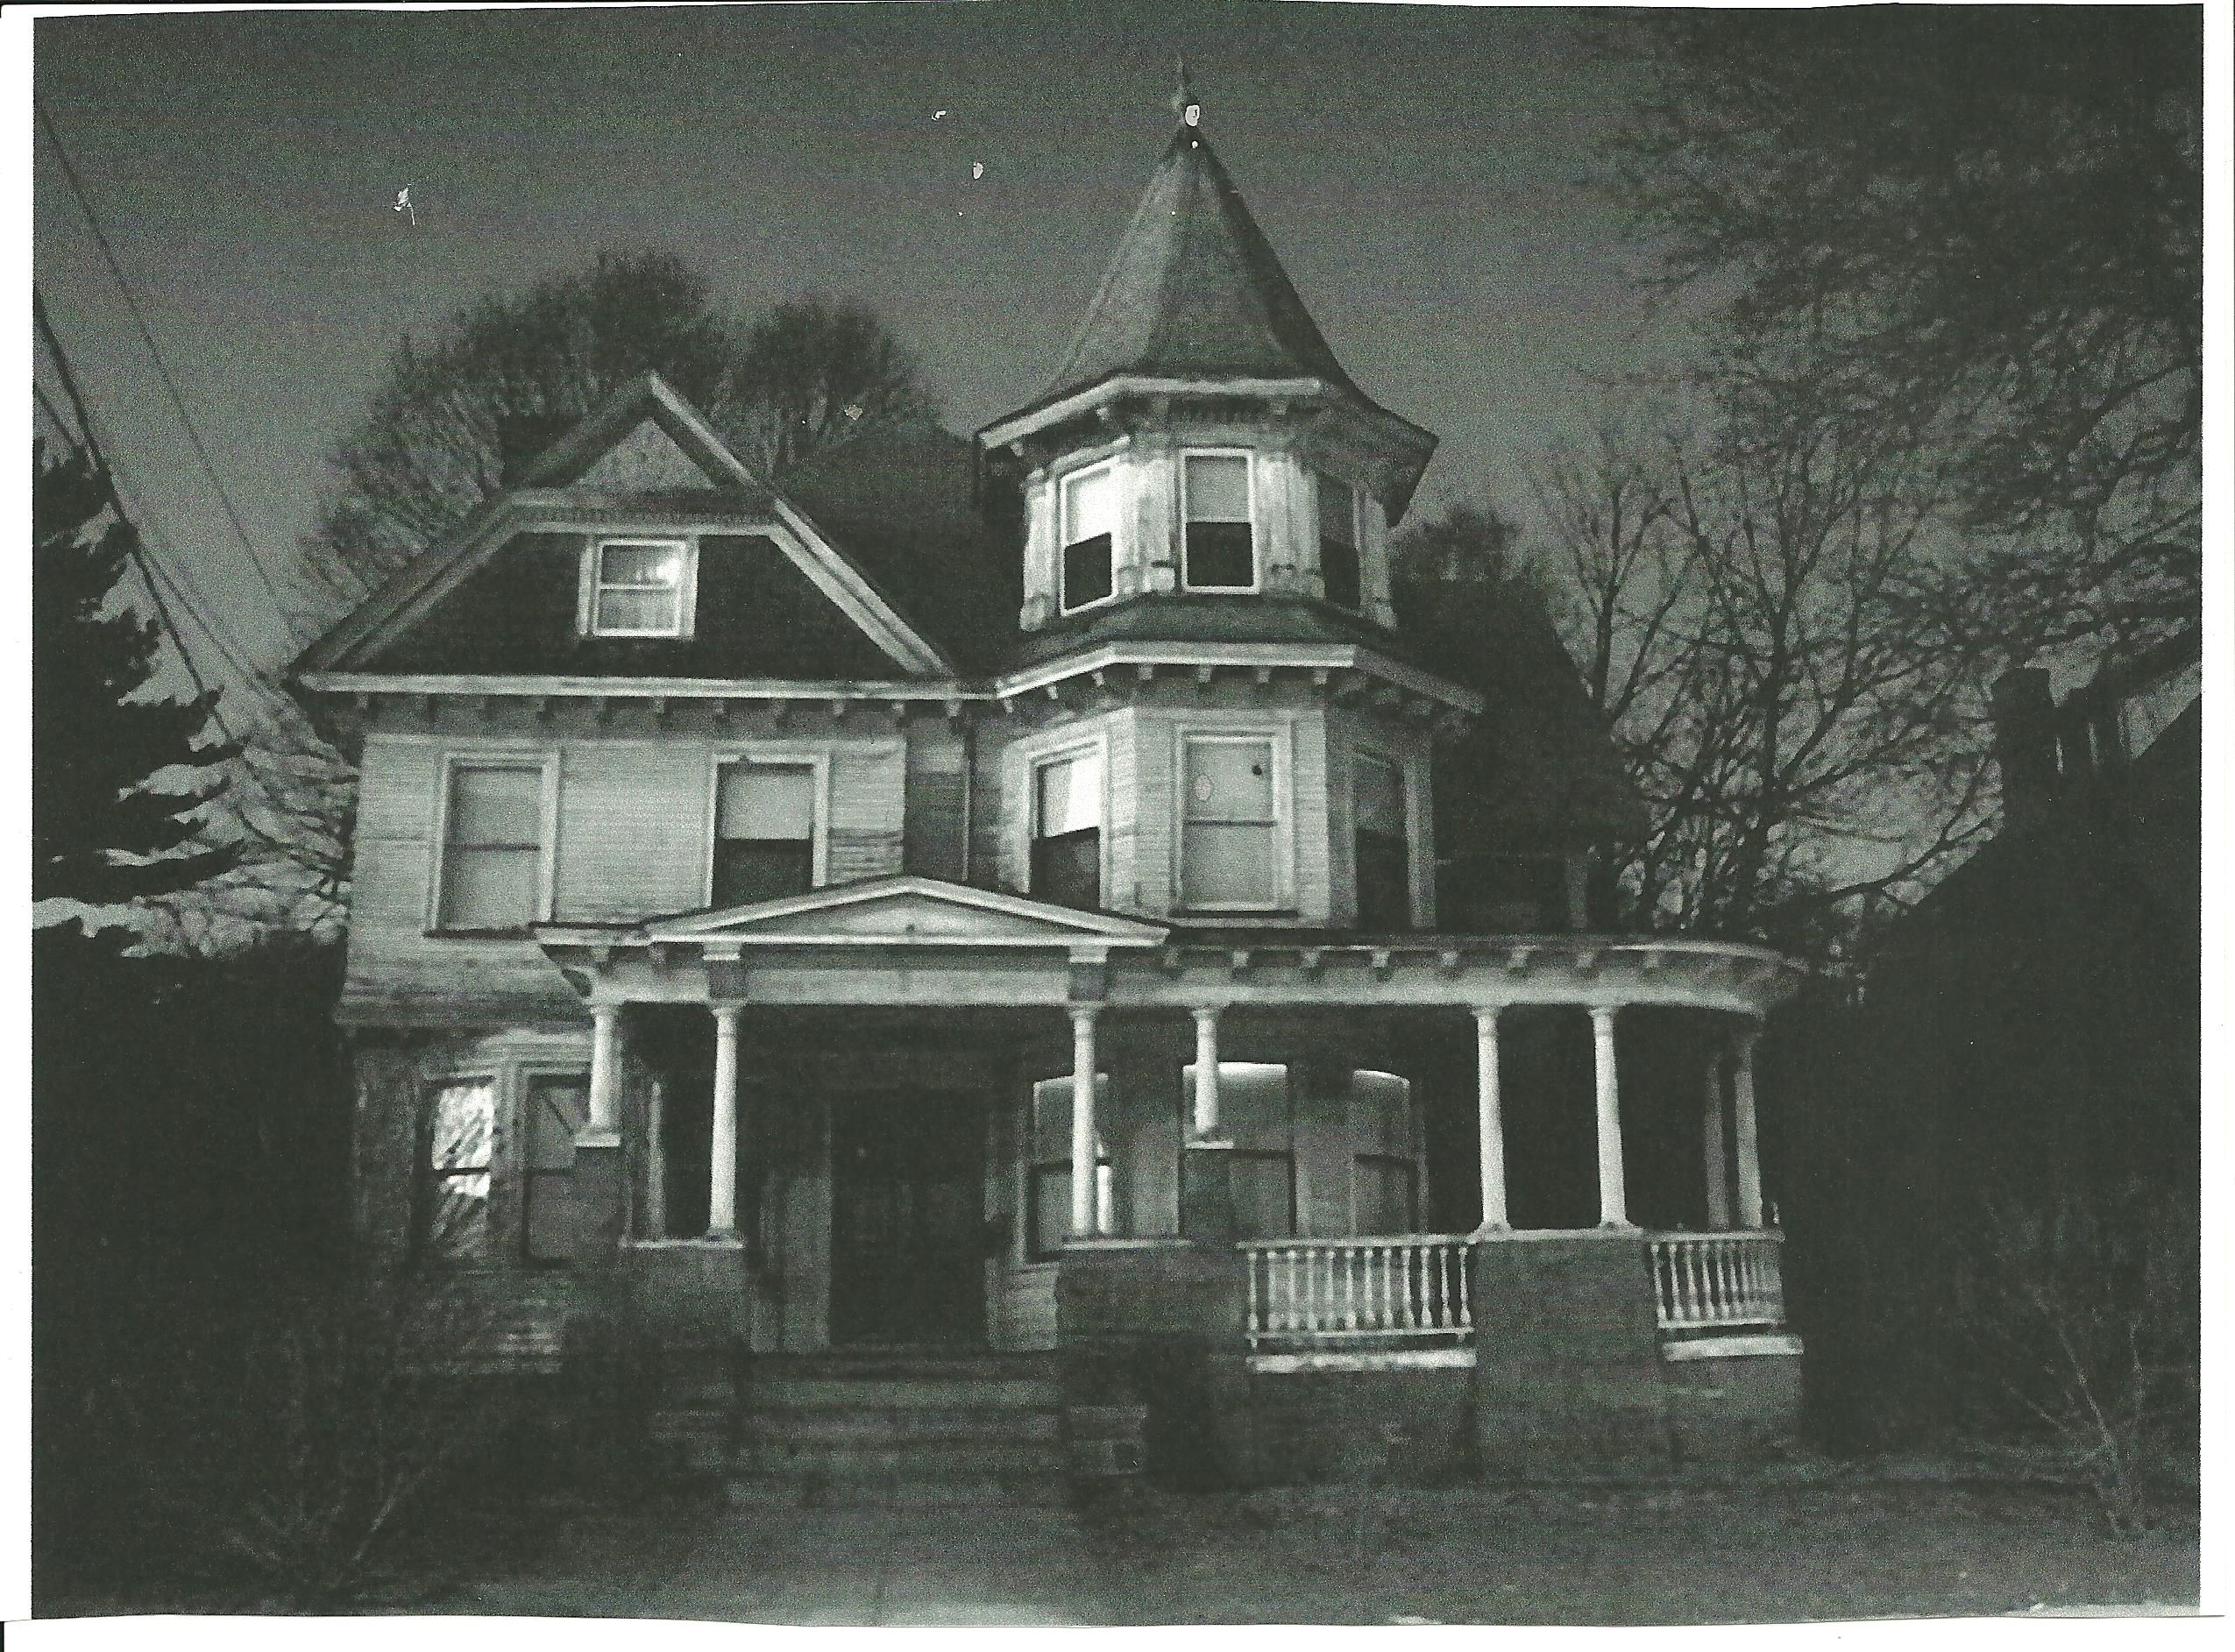 50 Homes That Look Like Haunted Houses Creepy Houses Old Abandoned Houses Abandoned Houses